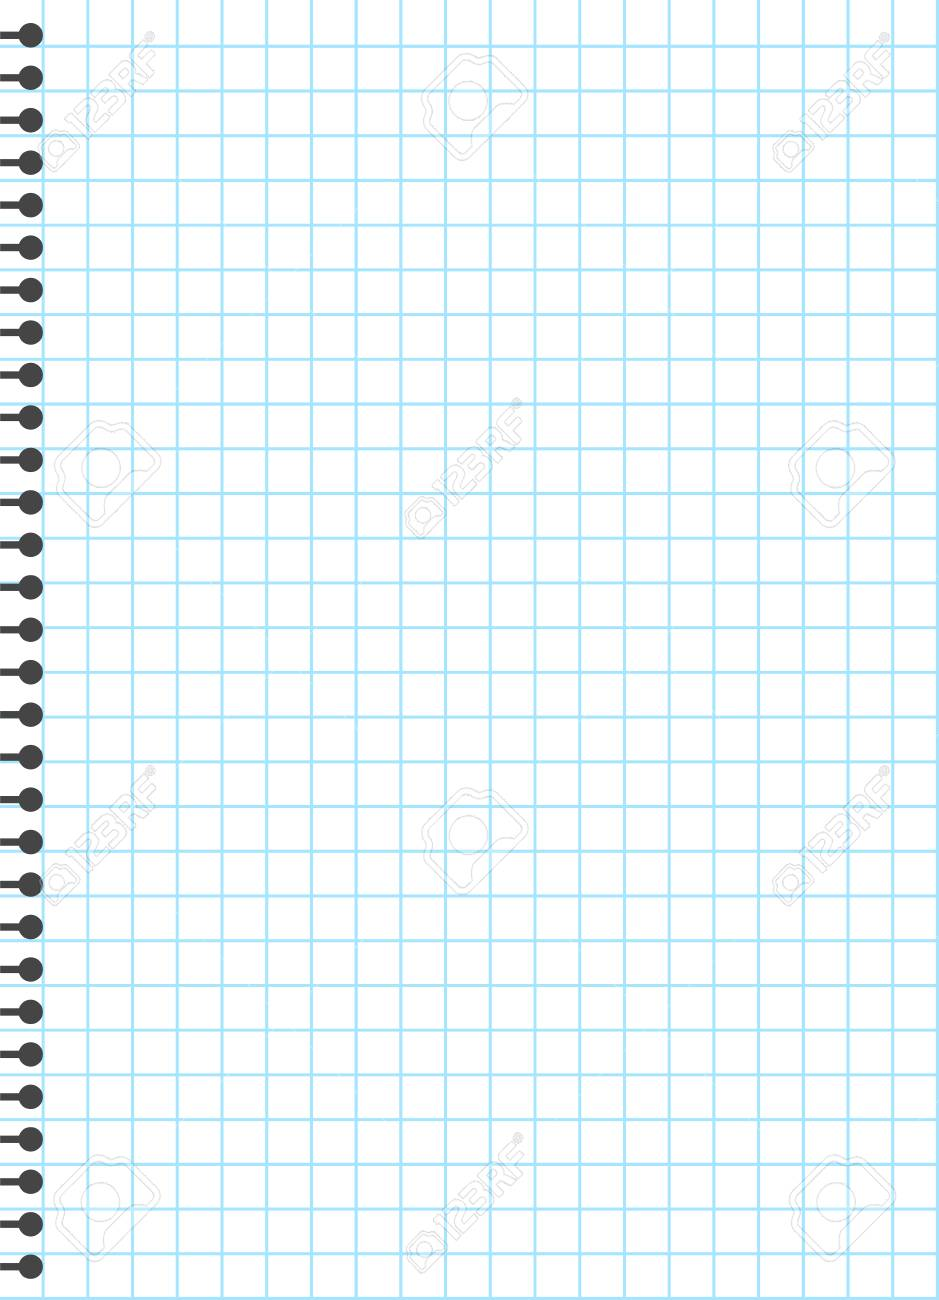 blank lined paper template, one page, notebook & exercise book